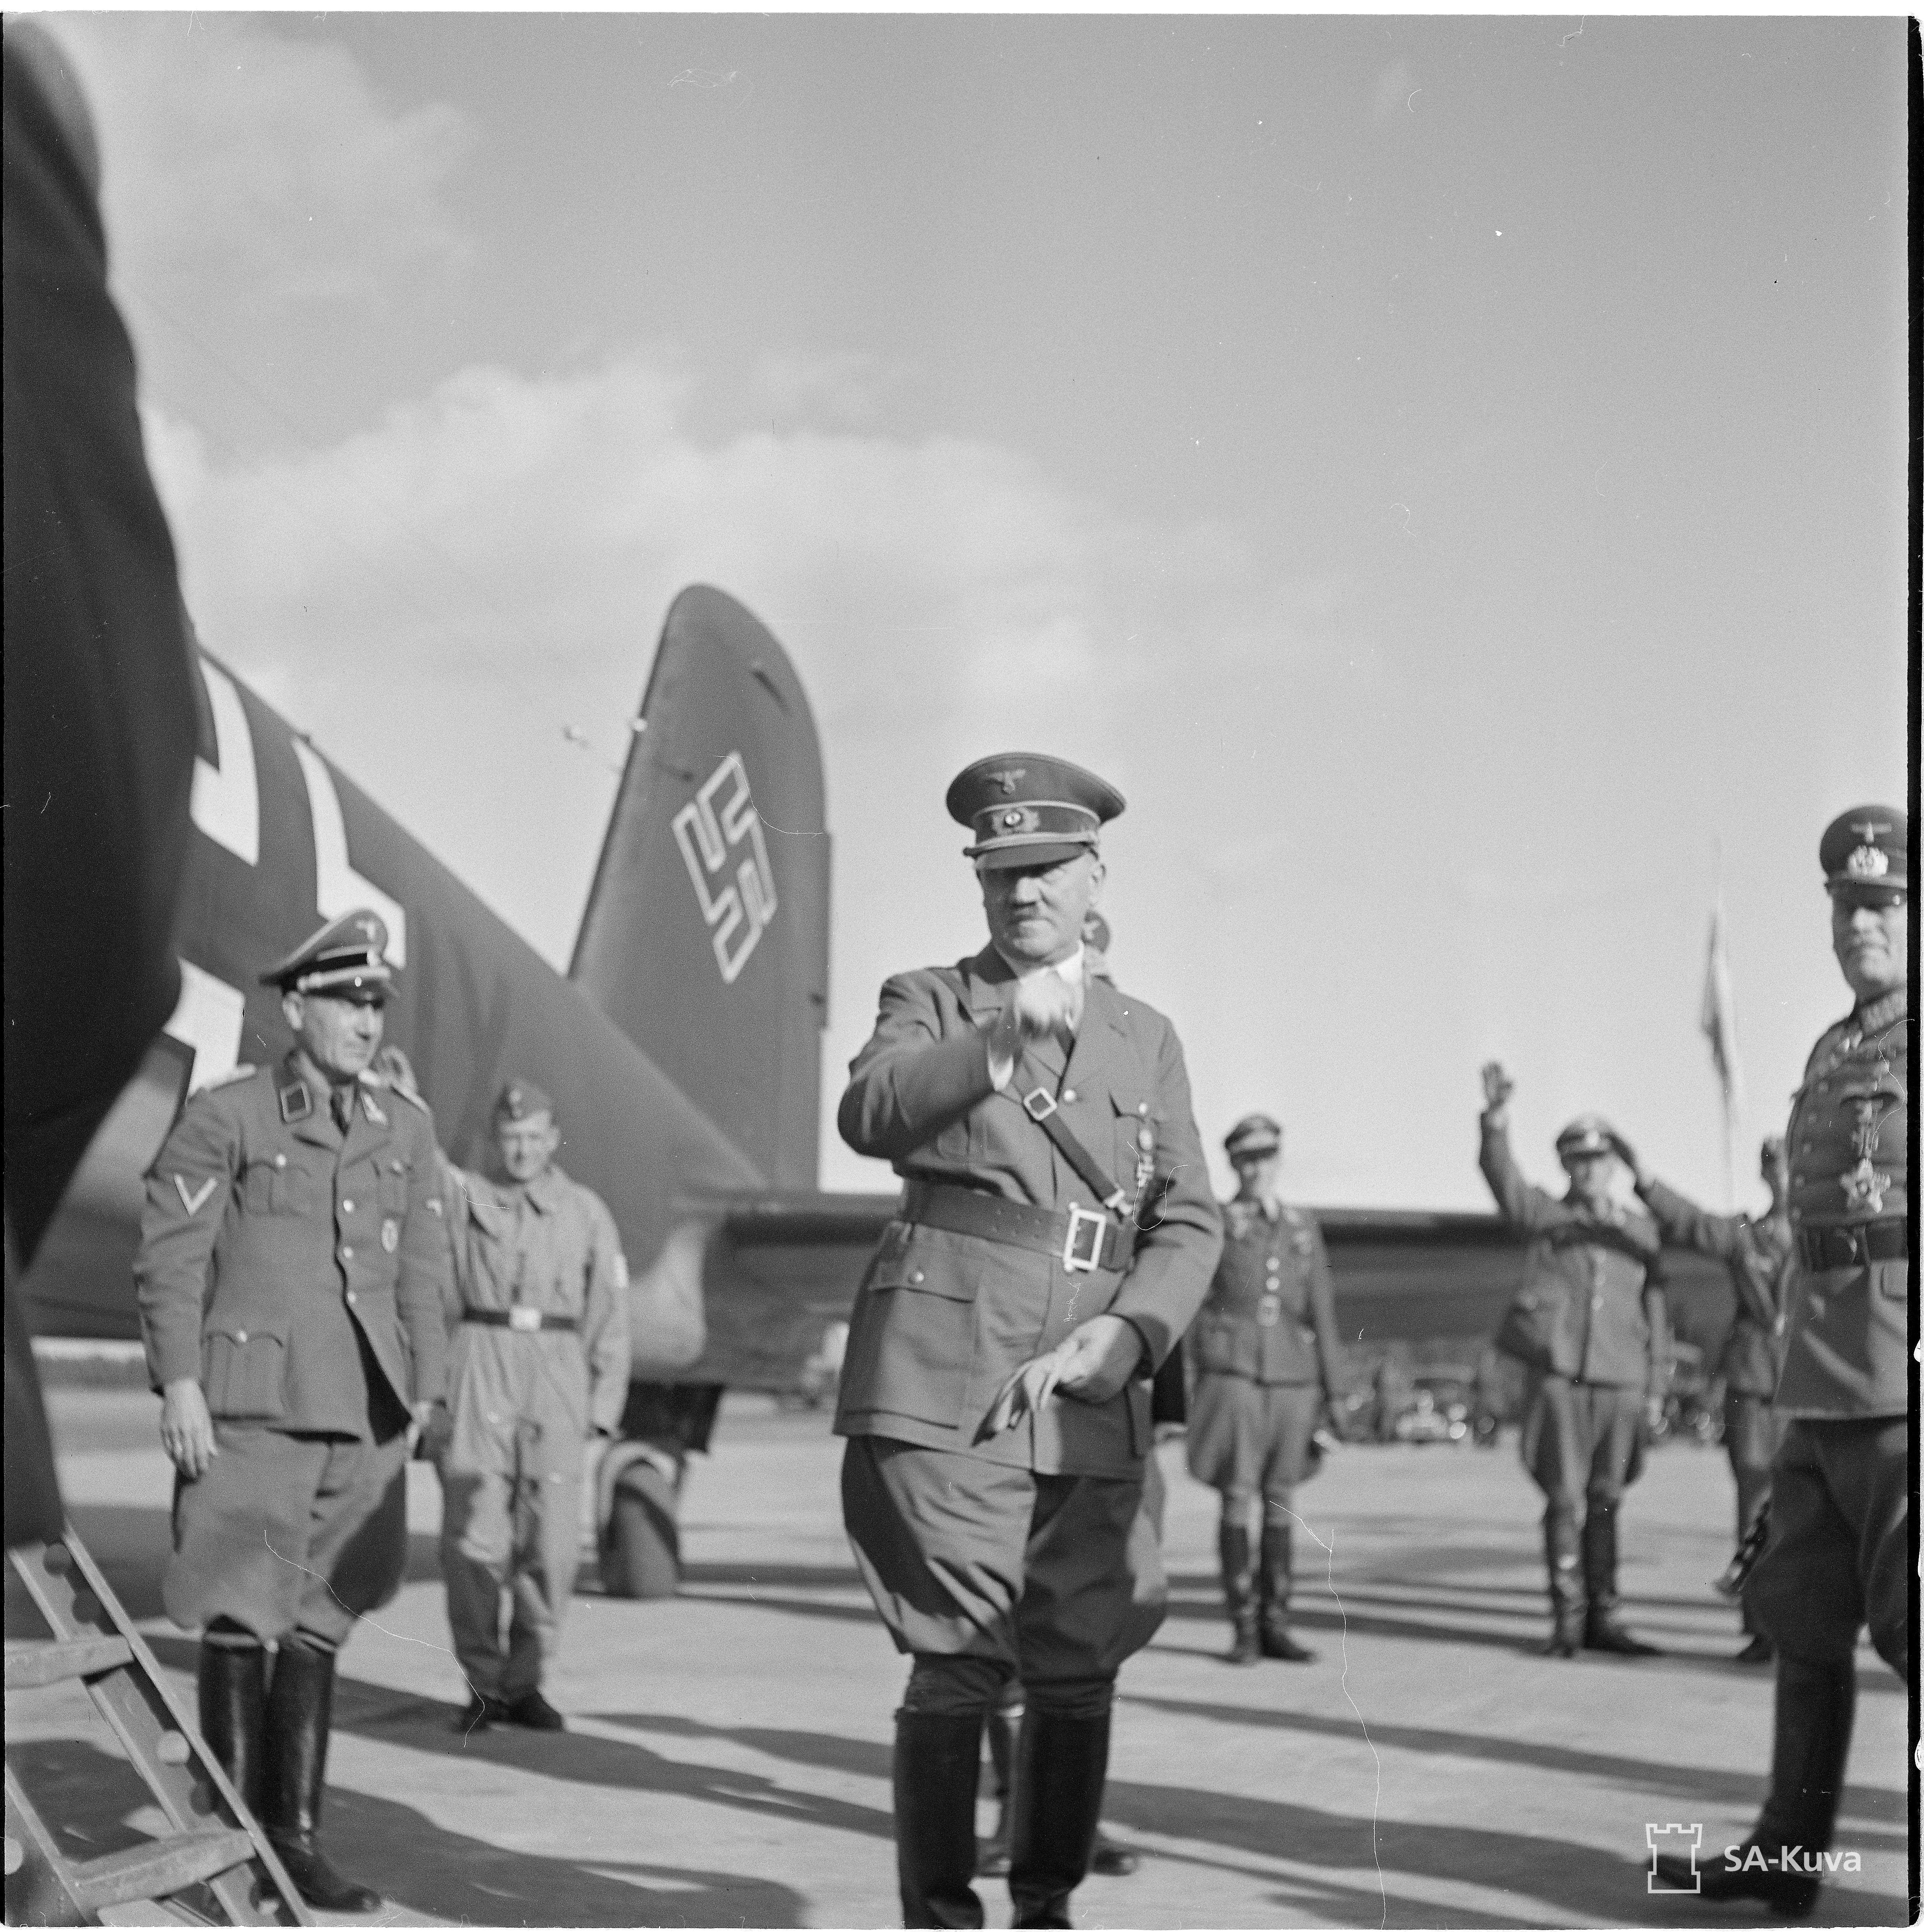 Adolf Hitler at his arrival in Finland in front of his Focke-Wulf Fw 200 Condor